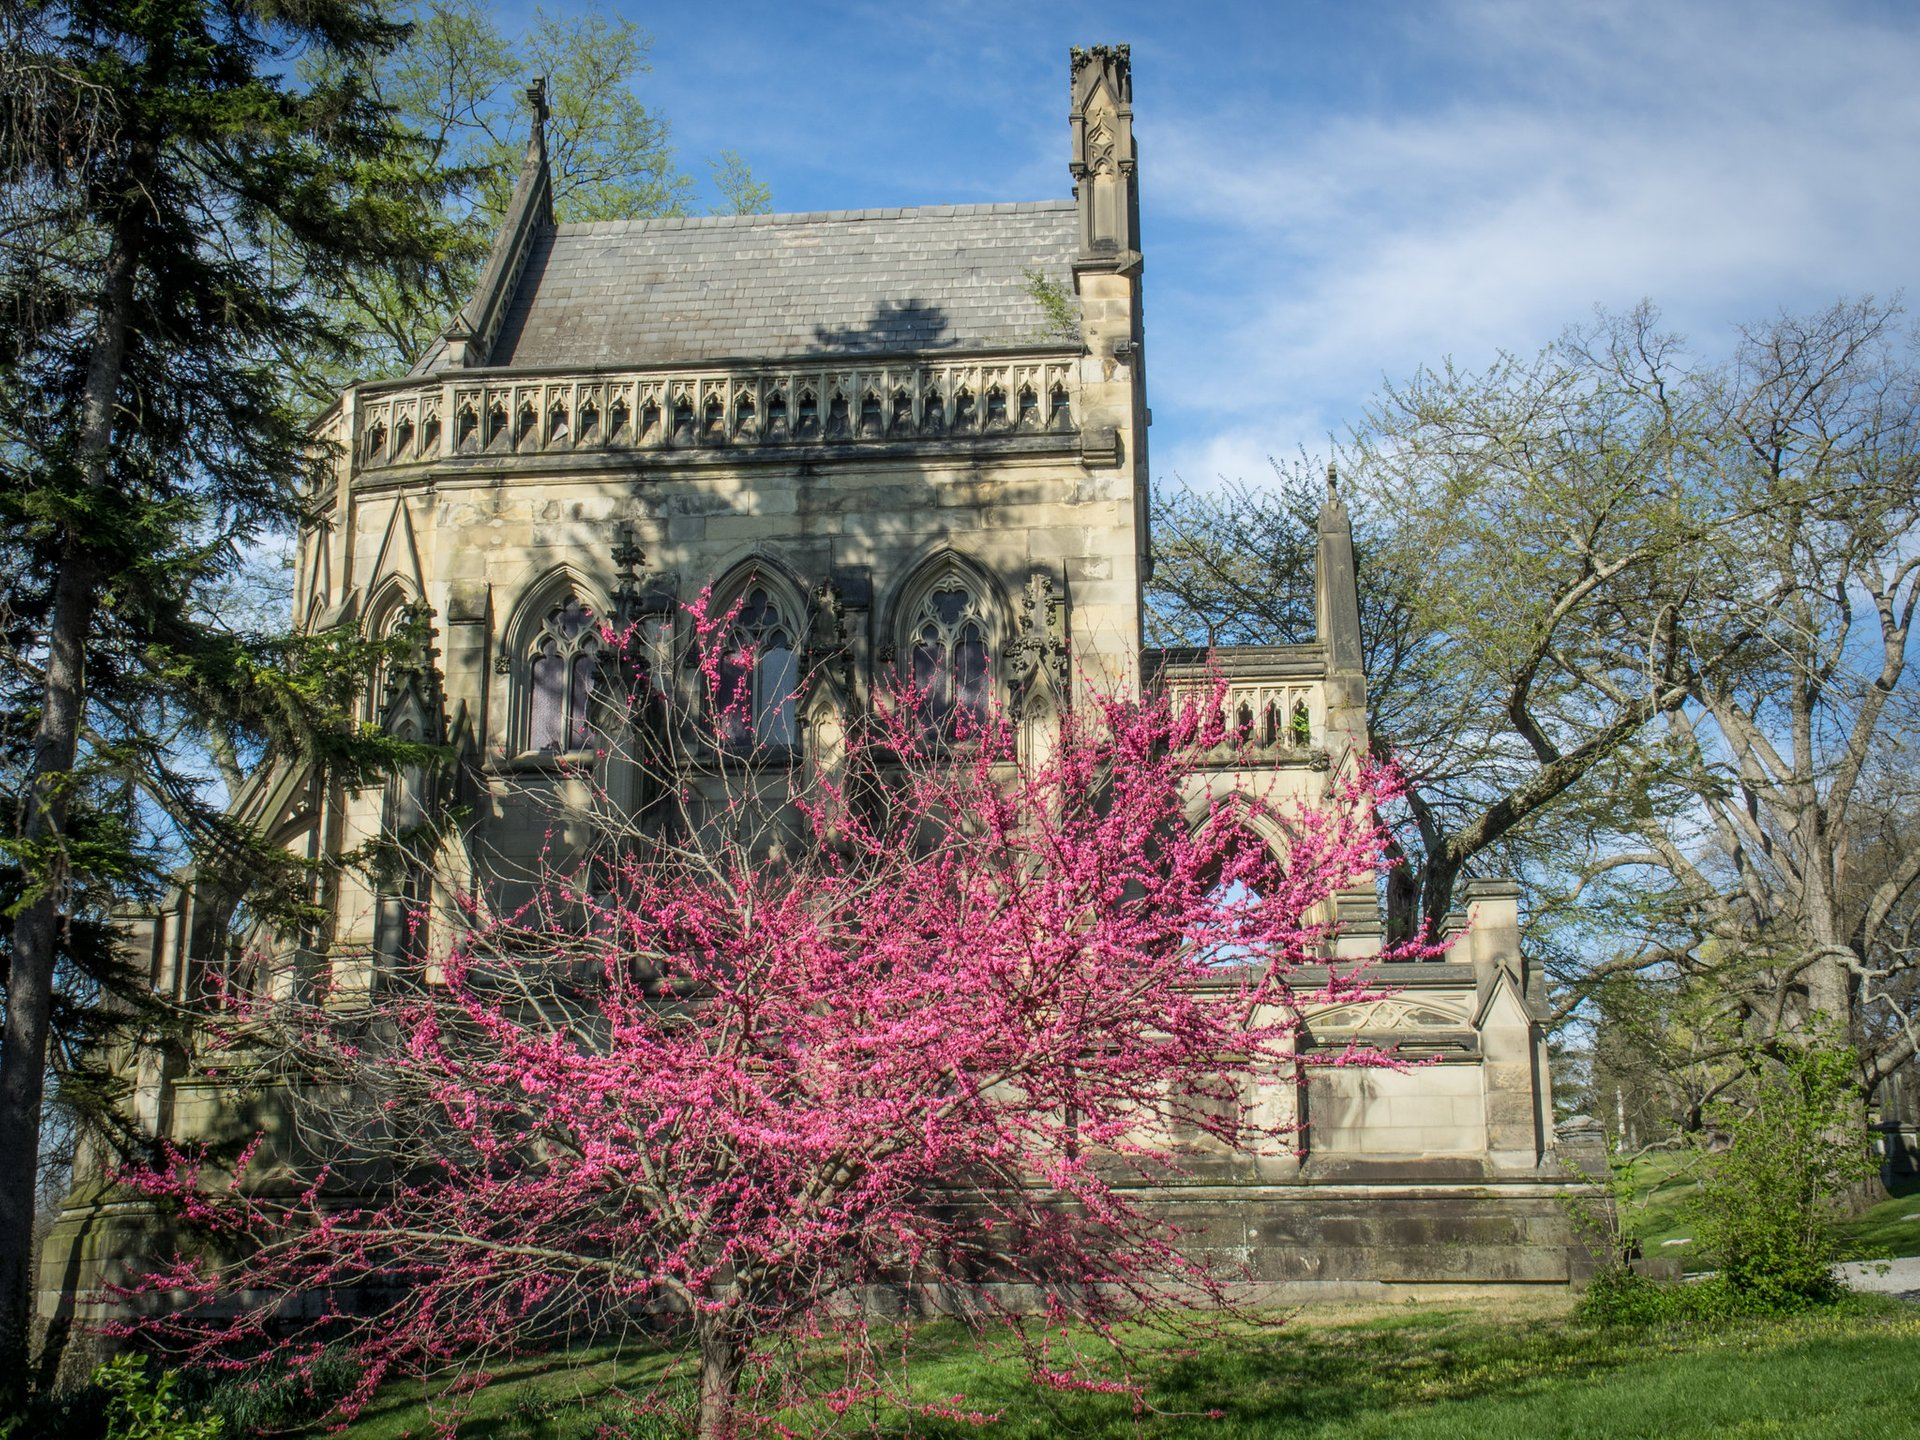 Spring blossoms surround the Dexter Mausoleum in Spring Grove Cemetery 2020